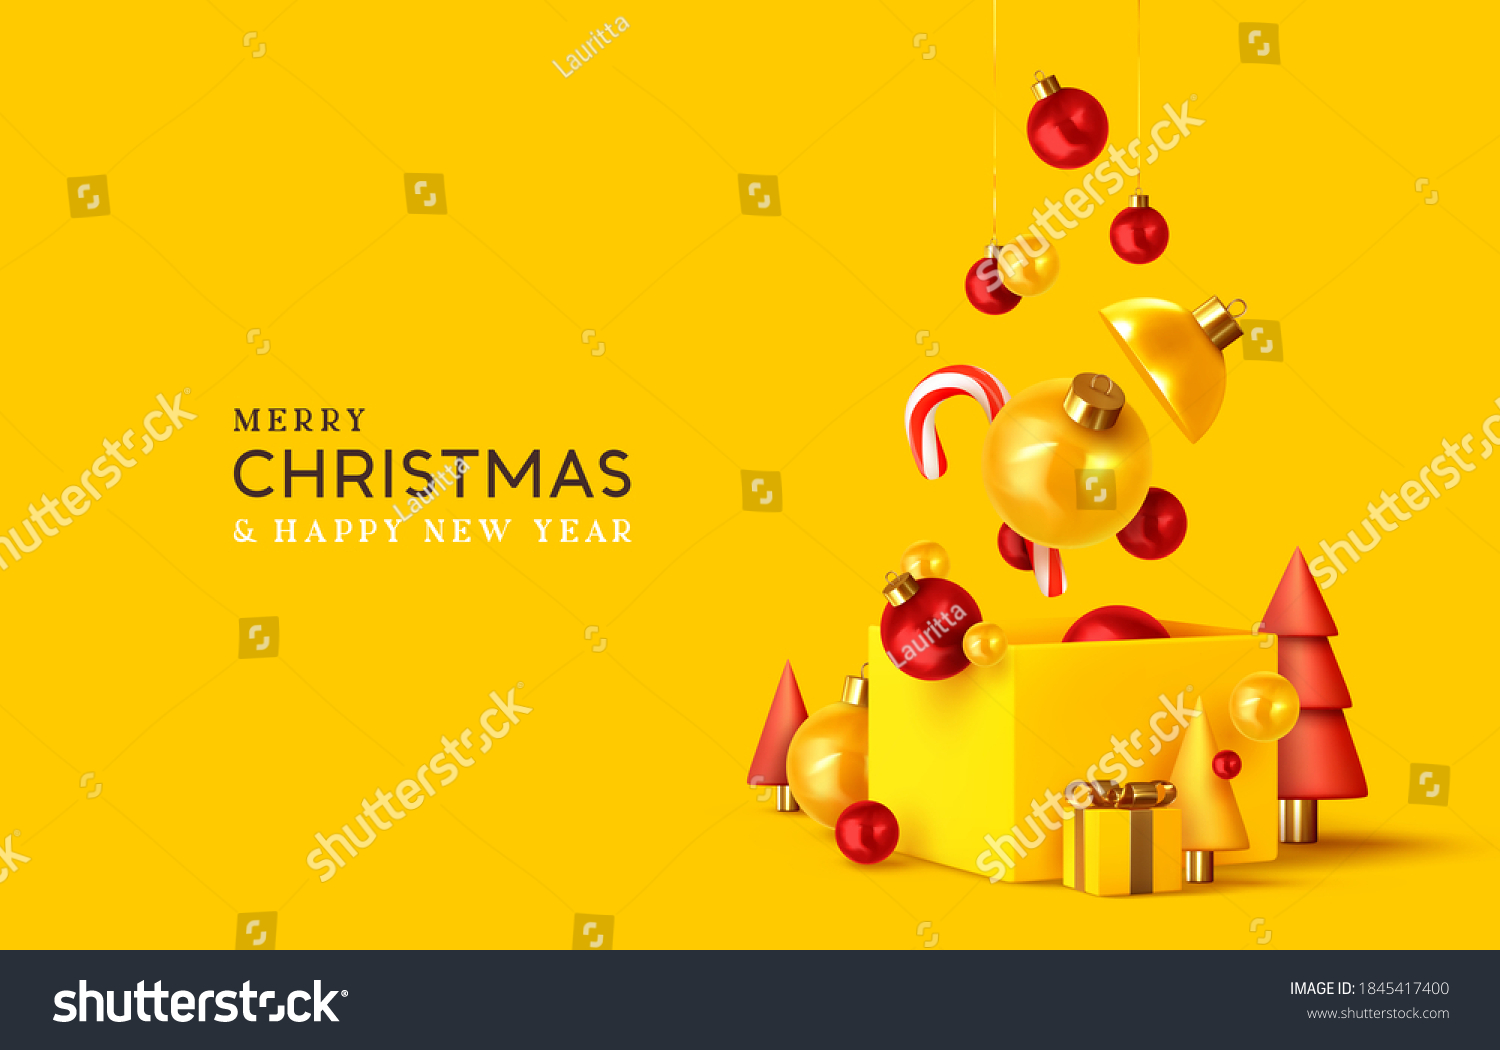 Merry Christmas and Happy New Year. Xmas design realistic abstract 3d objects. Gift box, bright bauble balls hanging from ribbon, conical pine tree, spruce, Soft yellow-red colors. vector illustration #1845417400